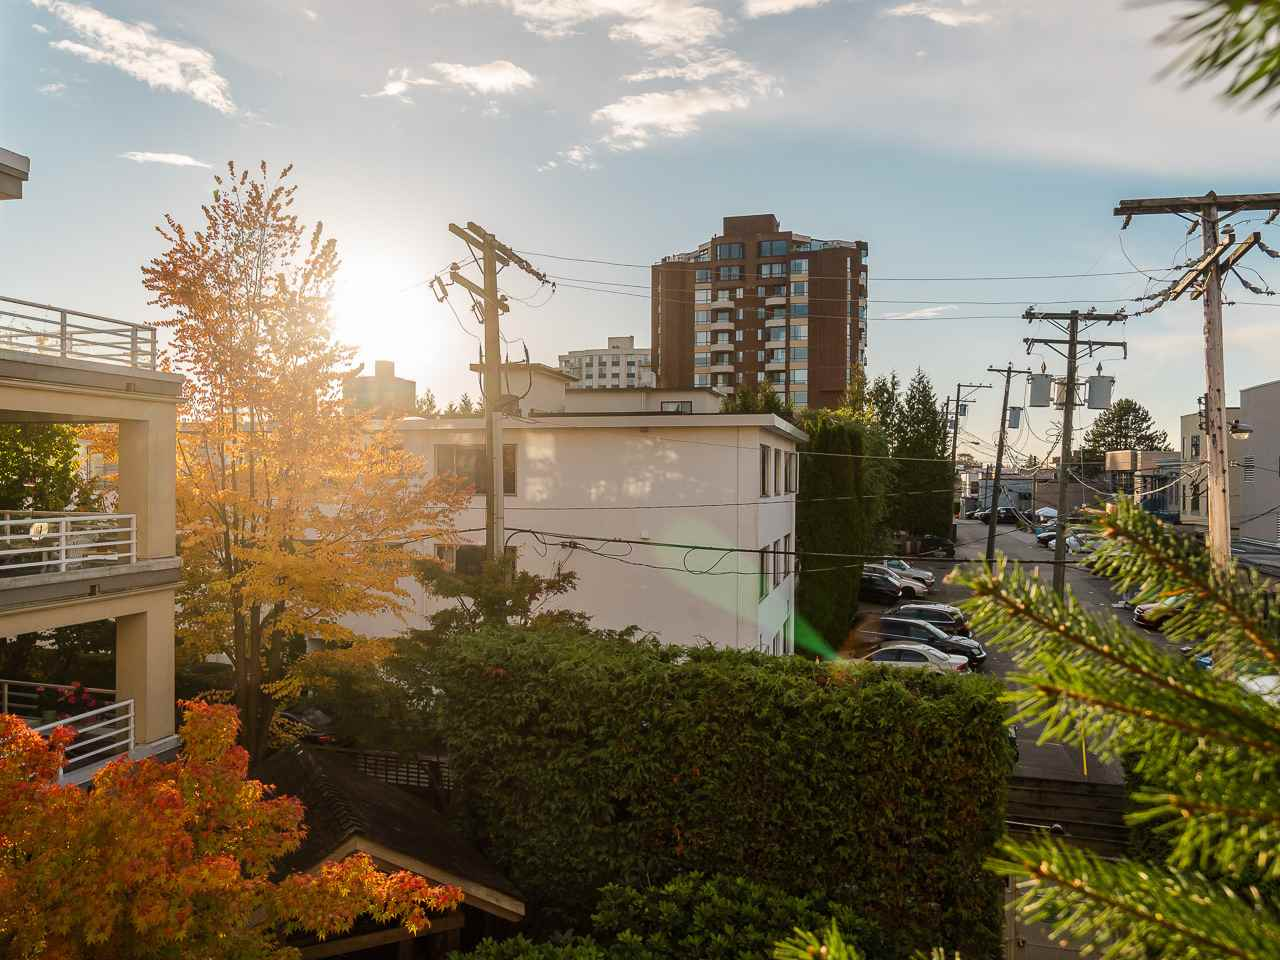 306 2105 W 42ND AVENUE - Kerrisdale Apartment/Condo for sale, 1 Bedroom (R2511504) - #22